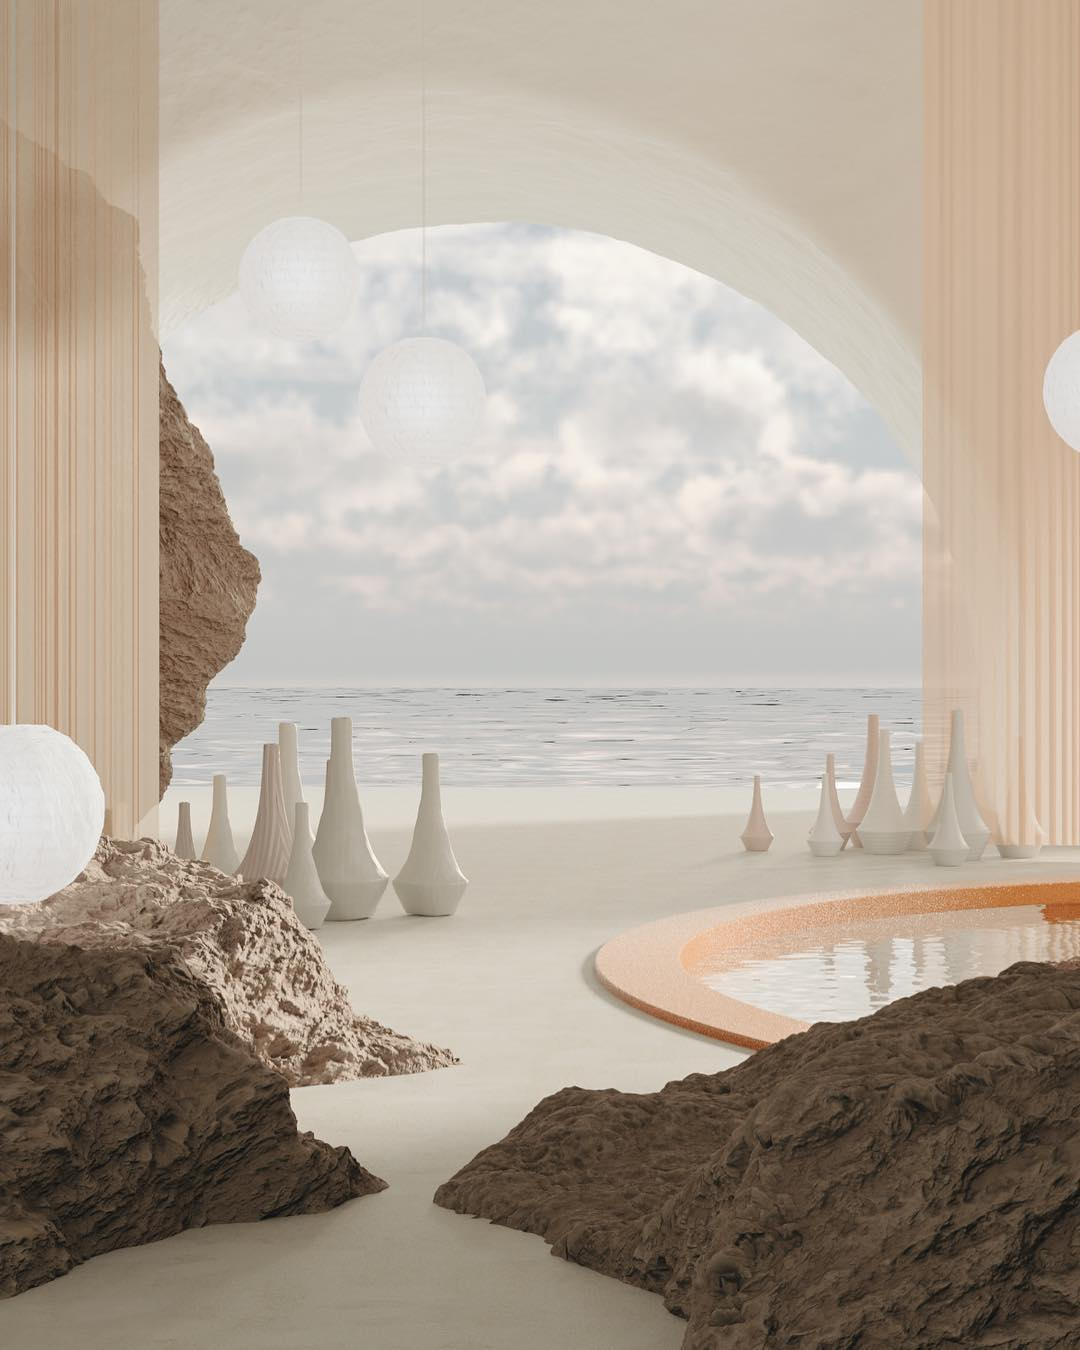 Immersive Design By Alexis Christodoulou 3D